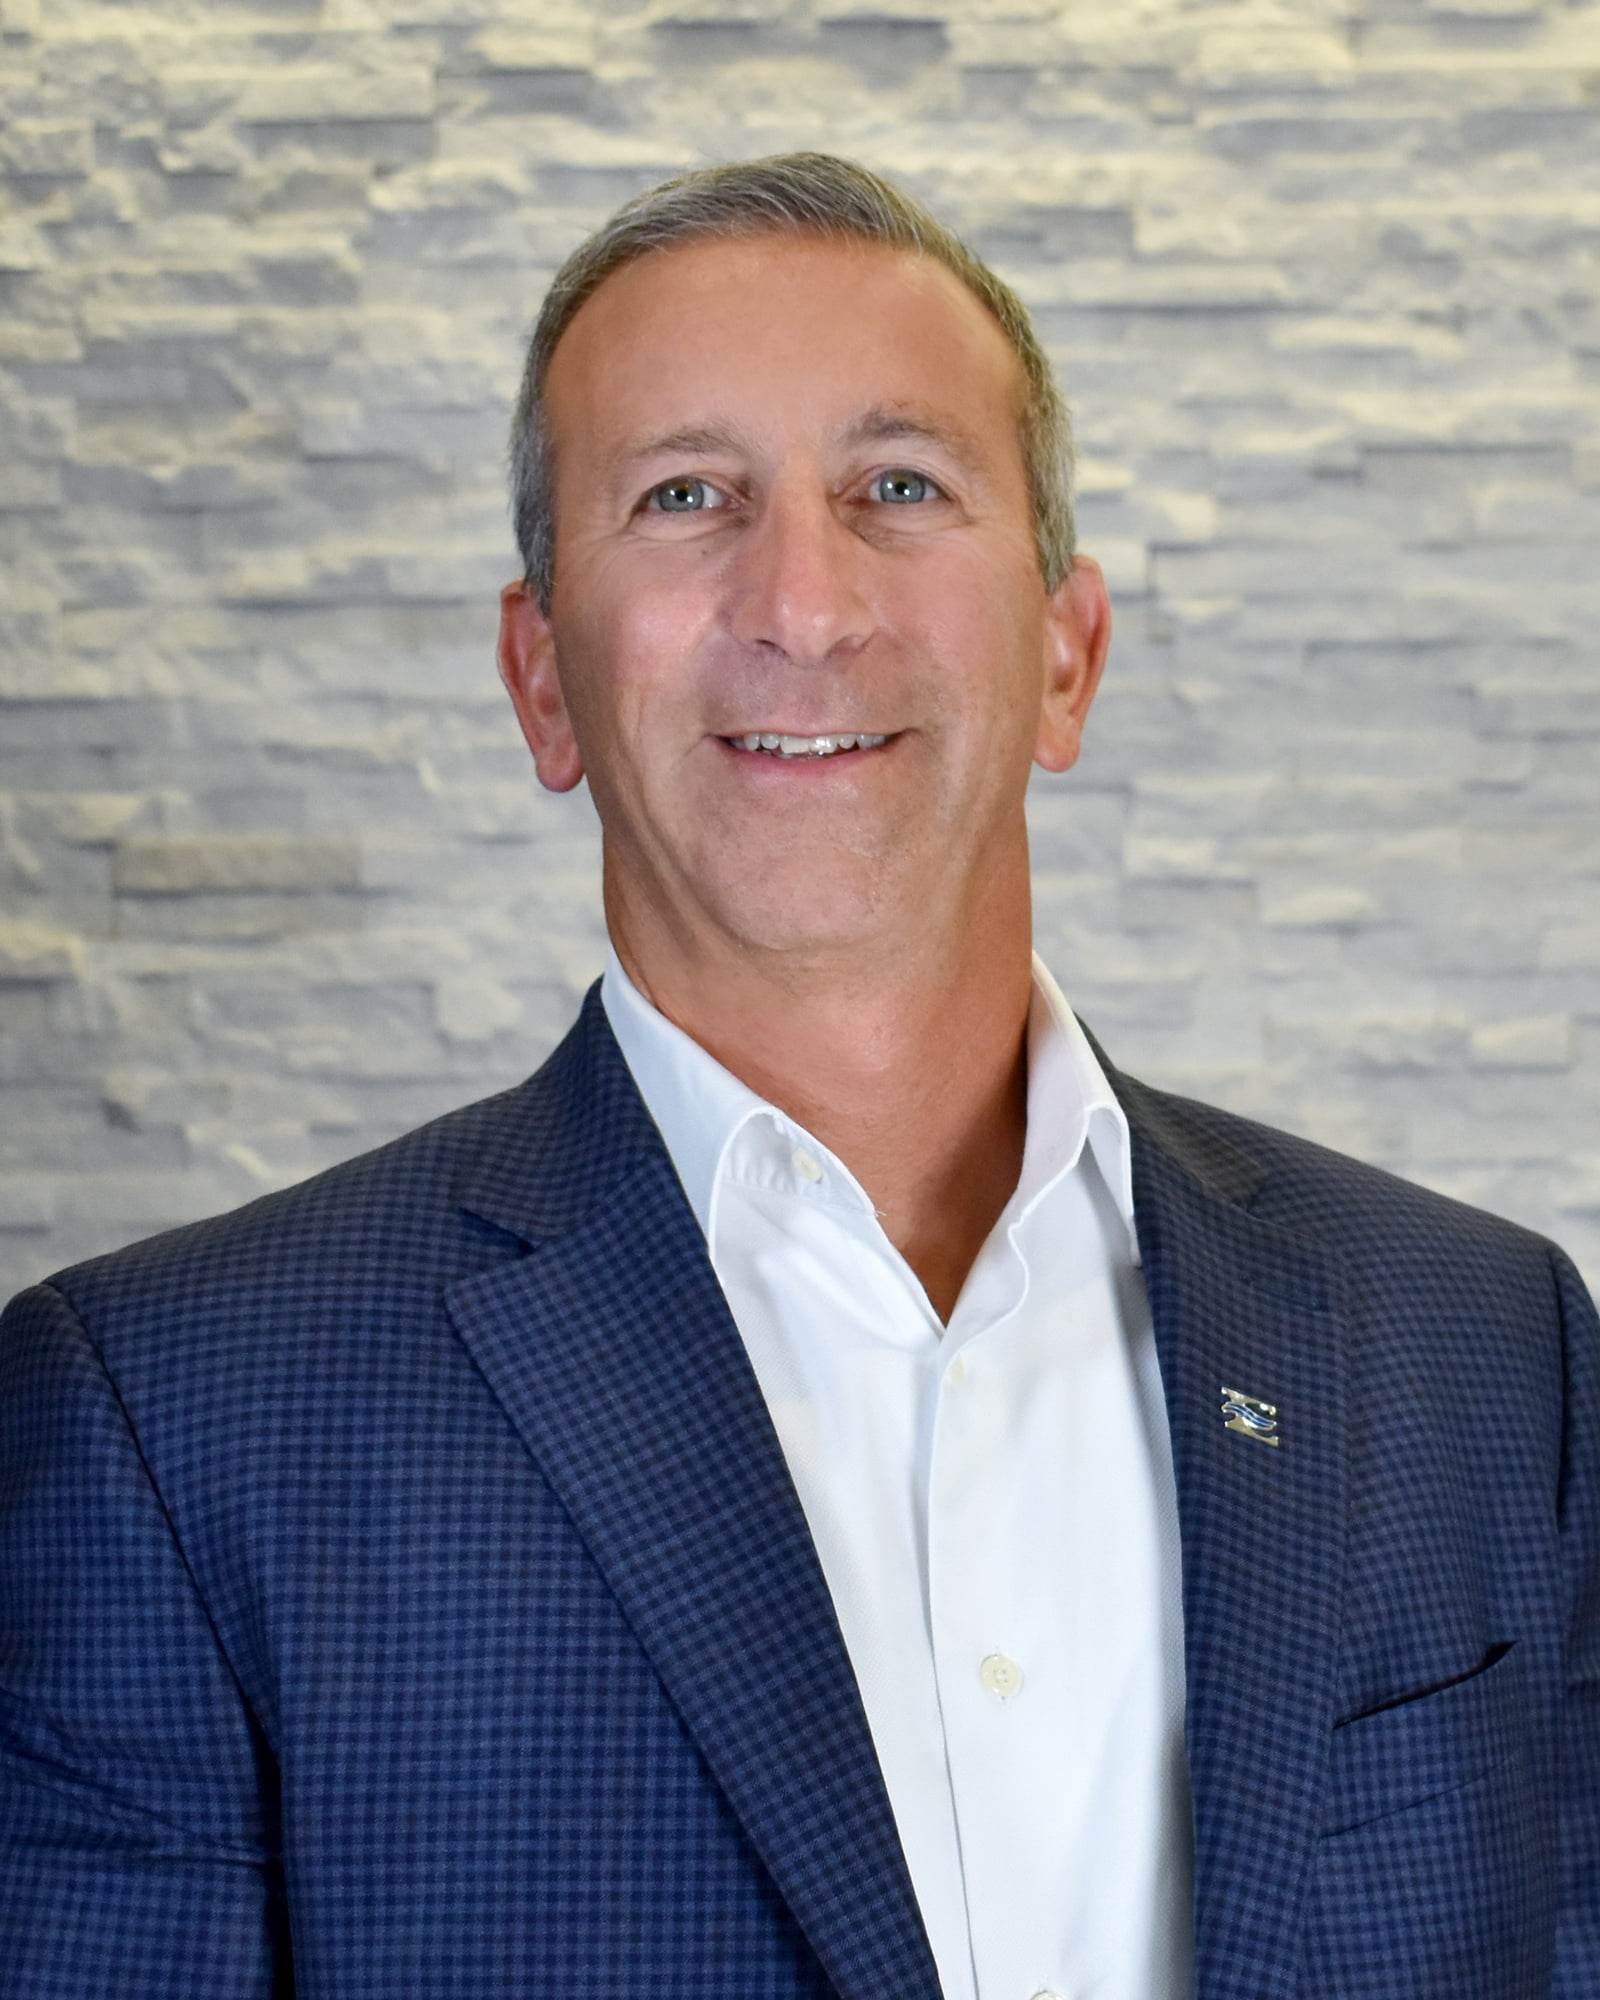 Michael Tavarozzi Named Managing Director, Growth of Evolve Bank & Trust's Mortgage Division